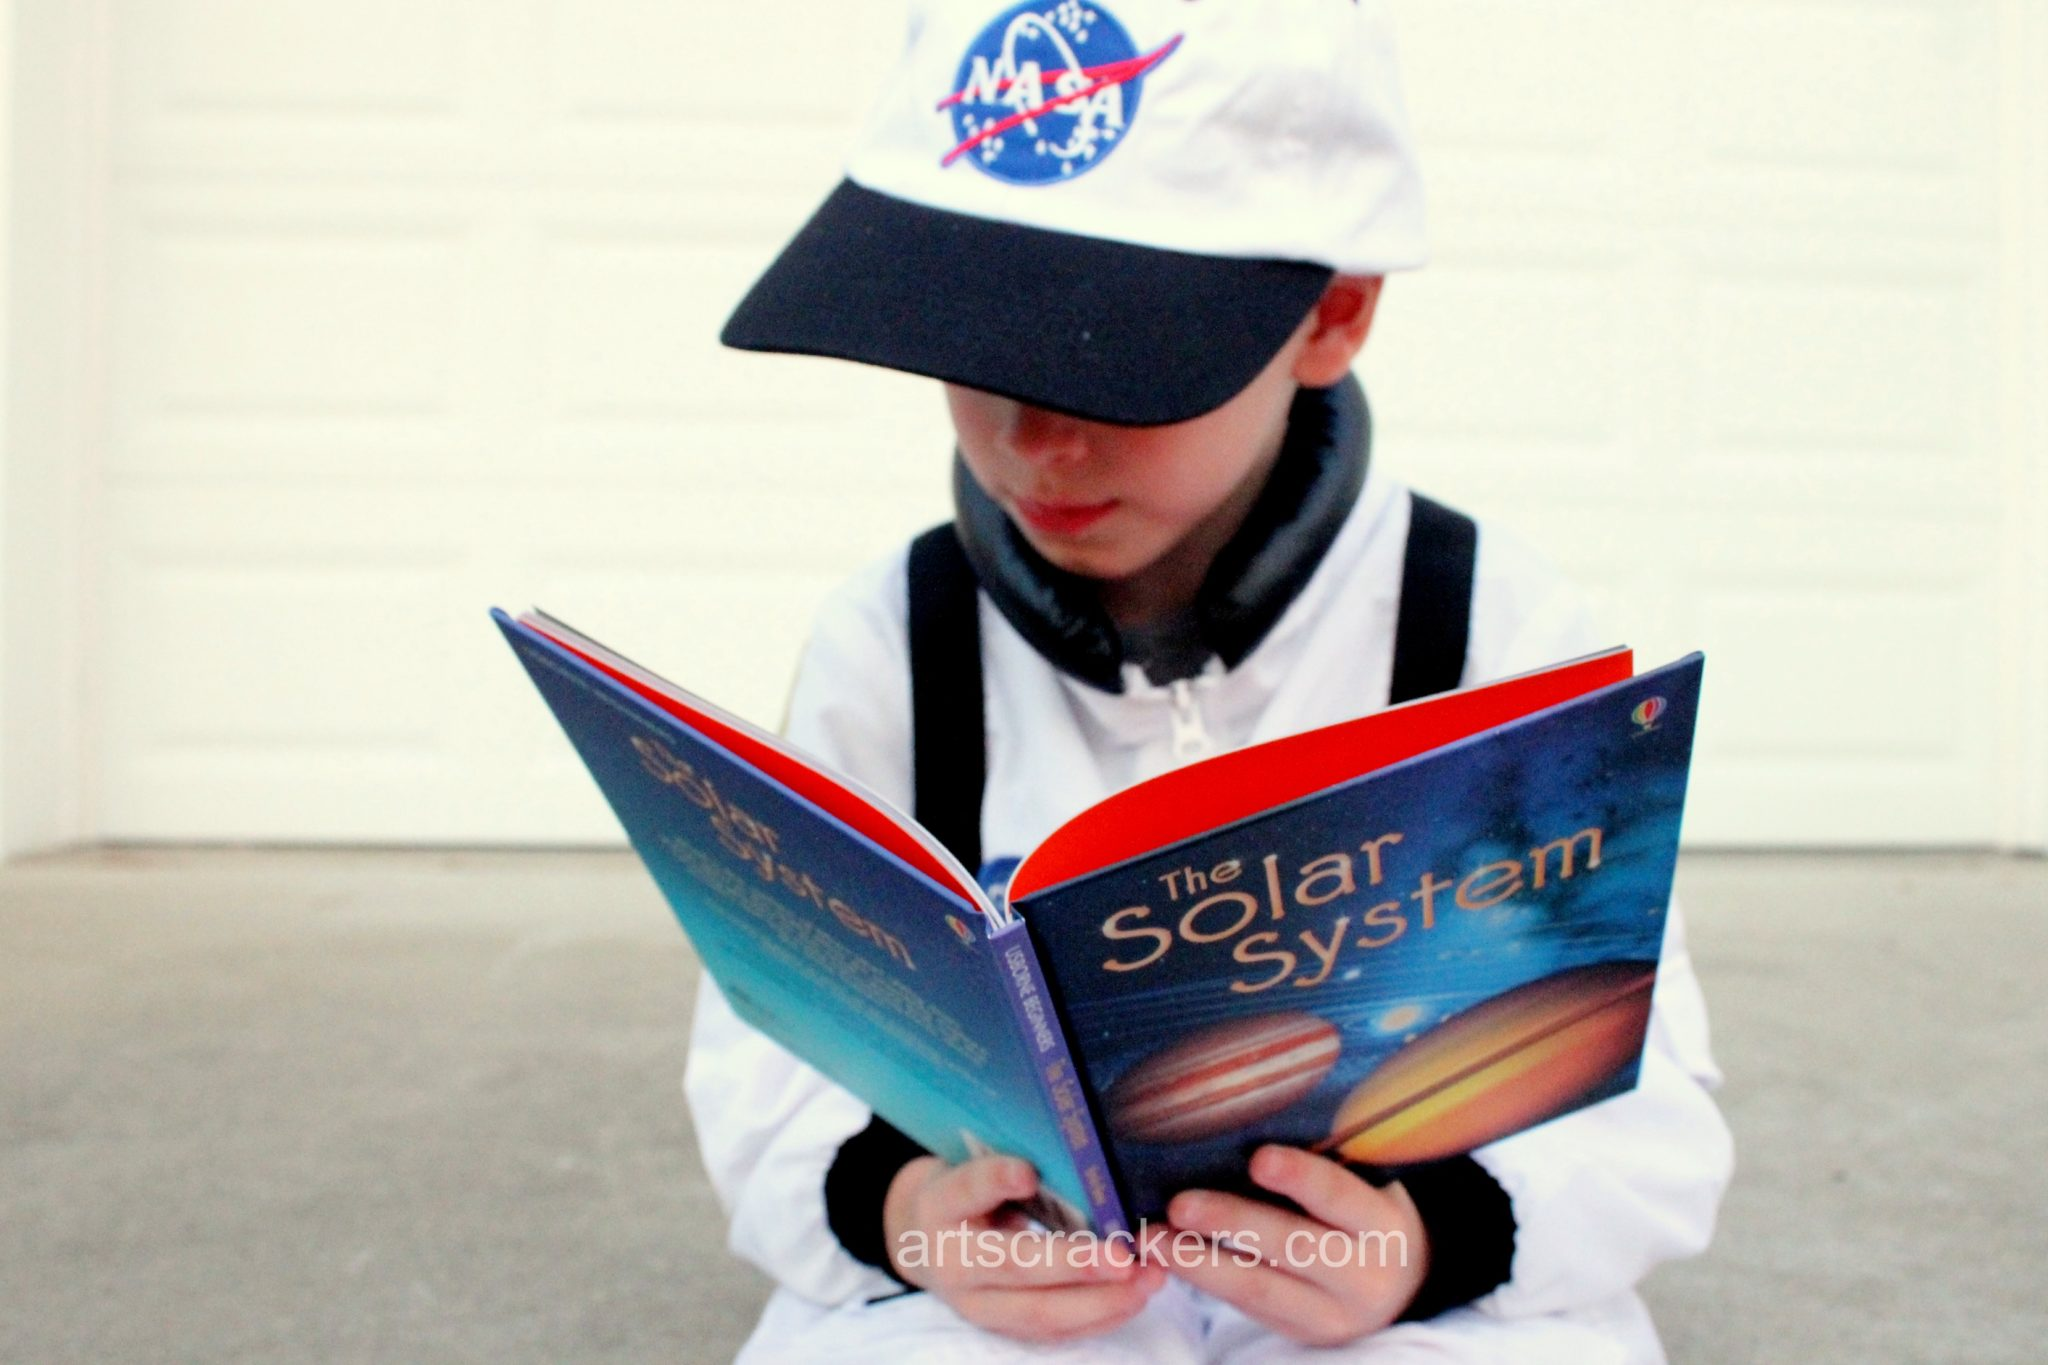 Jr Astronaut Reading Space Books. Click the picture to read the review.